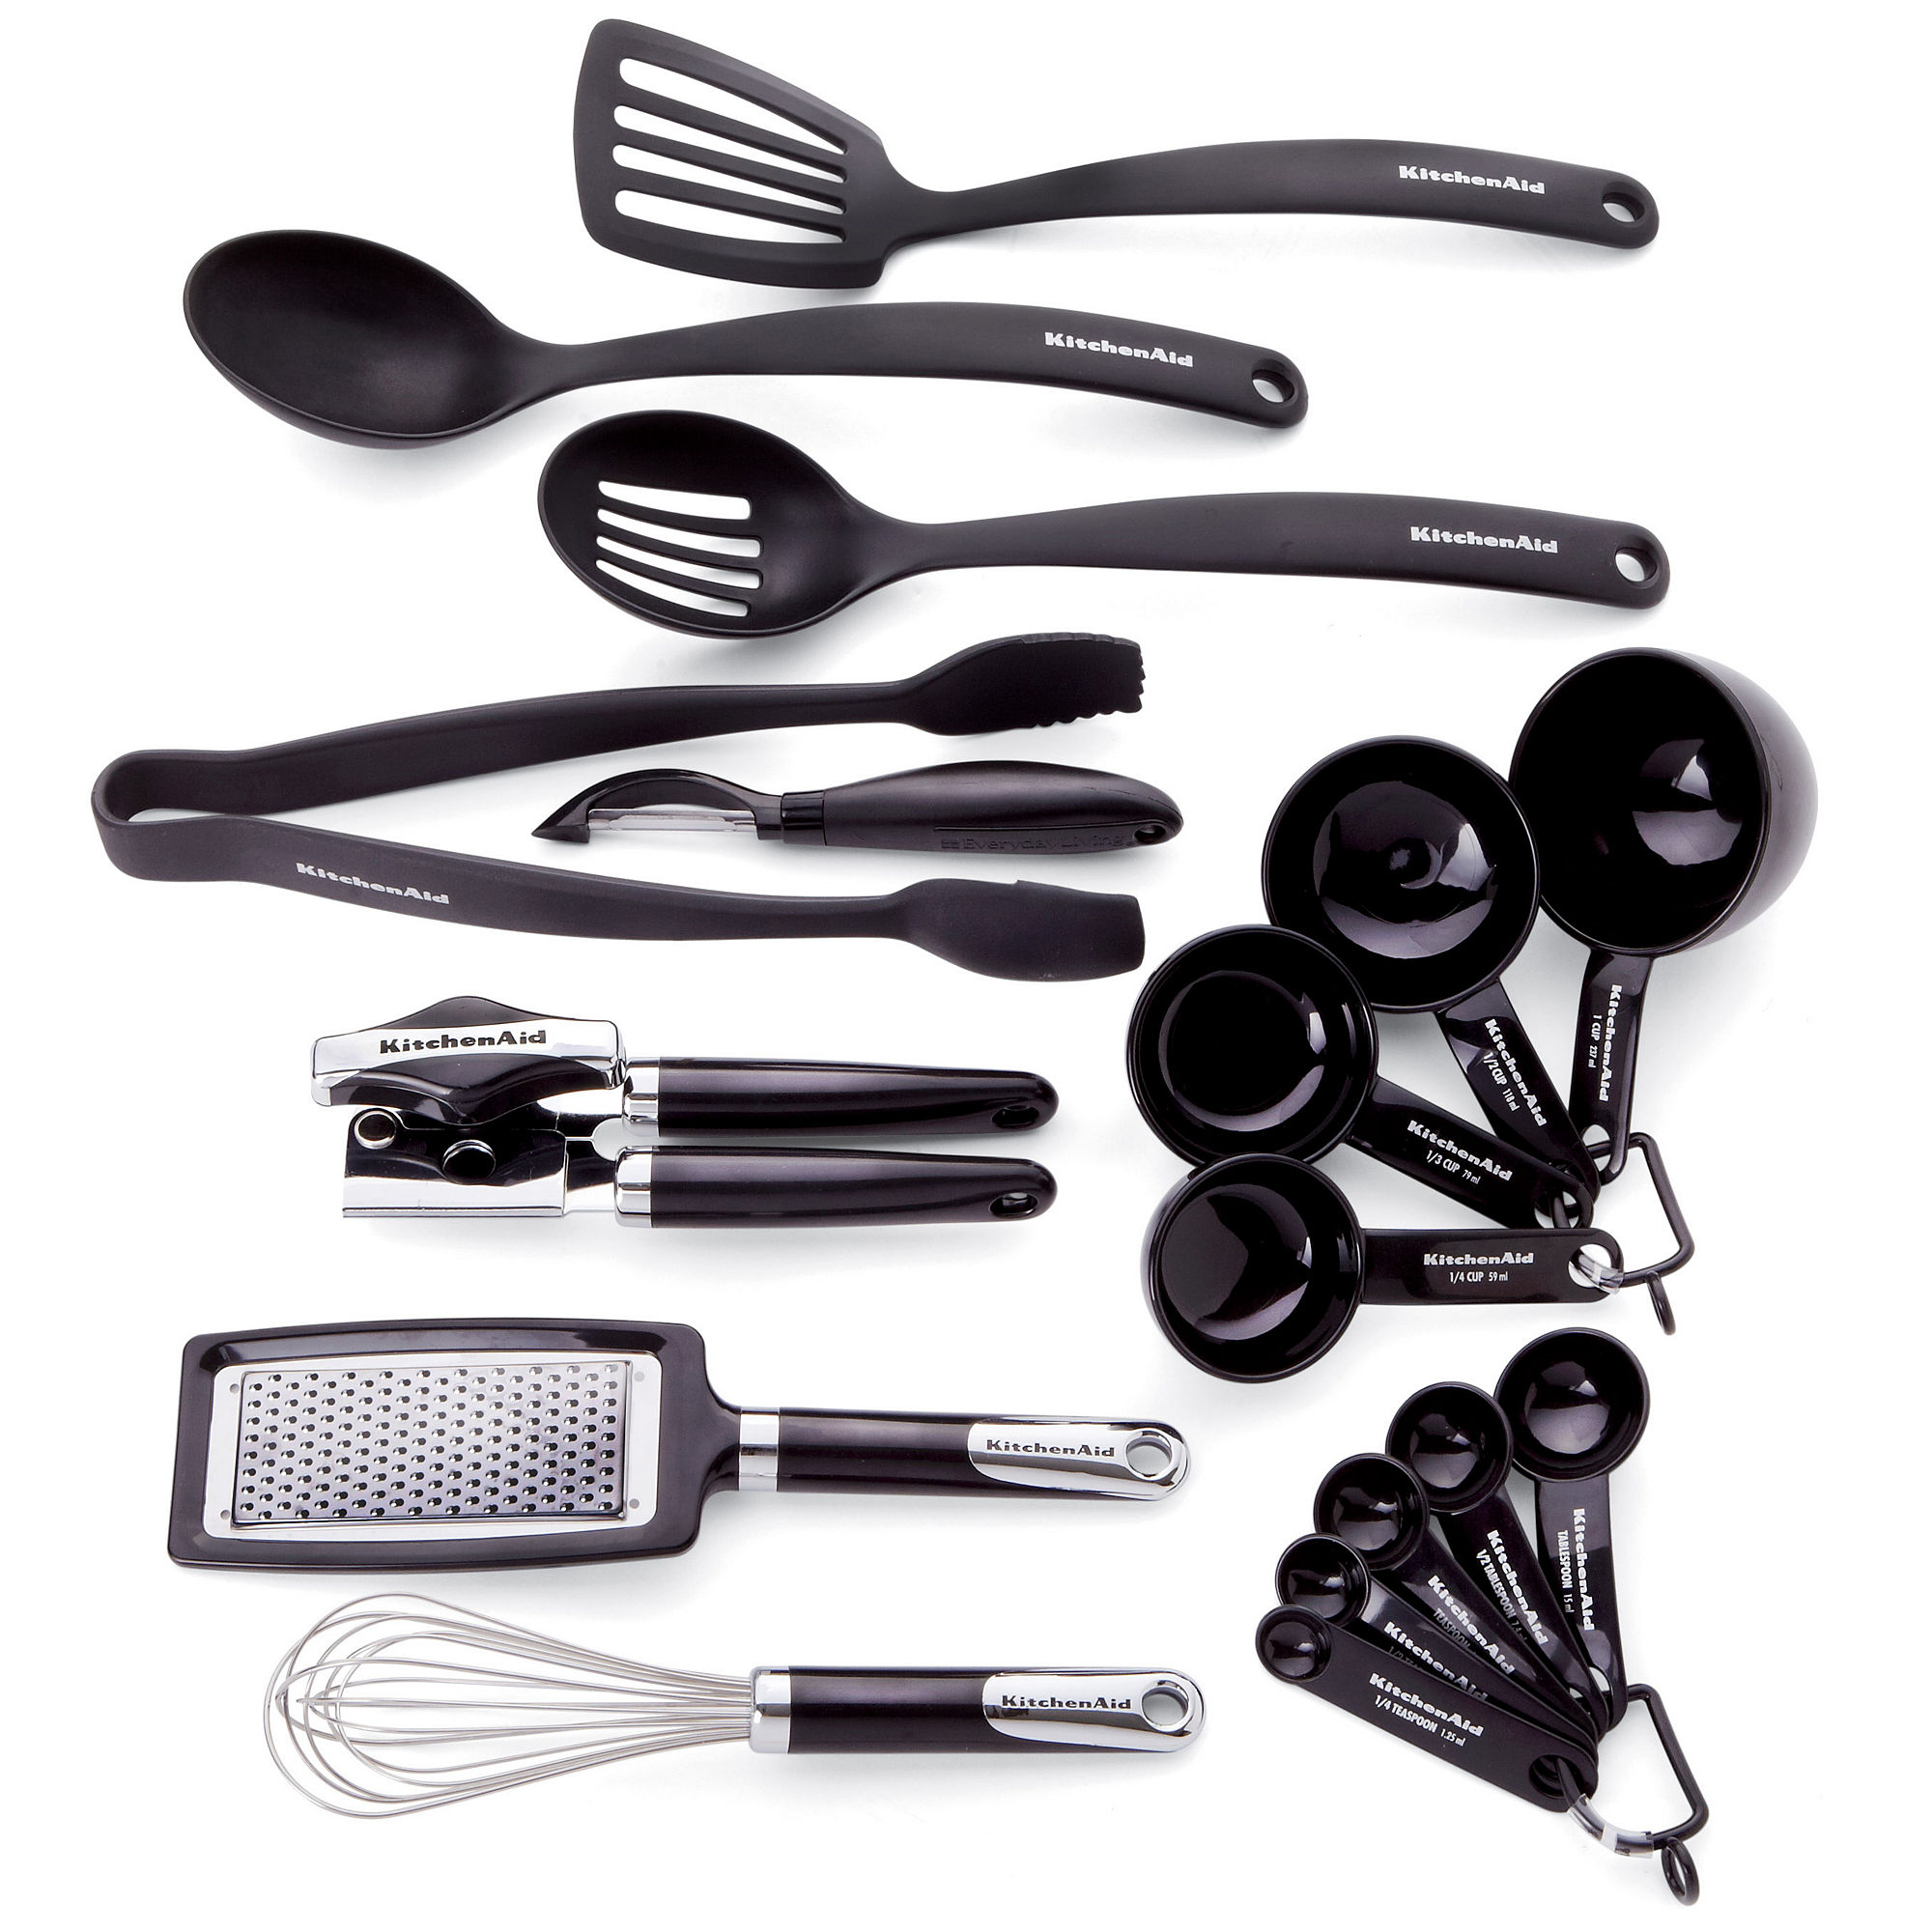 KitchenAid Kitchen 17-pc. Gadget & Tool Set